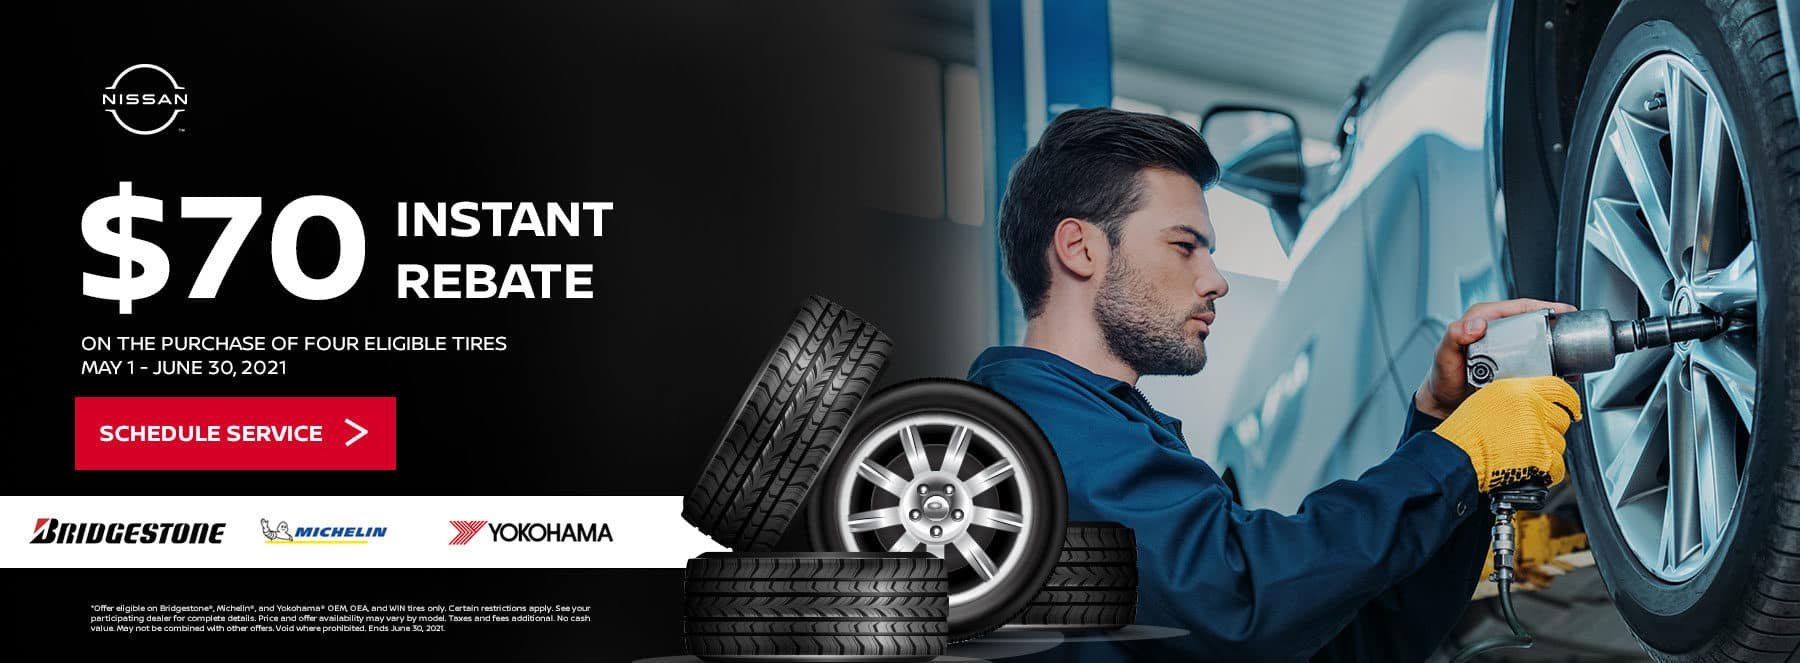 On the Purchase of Four Eligible Tires May 1 - June 30, 2021